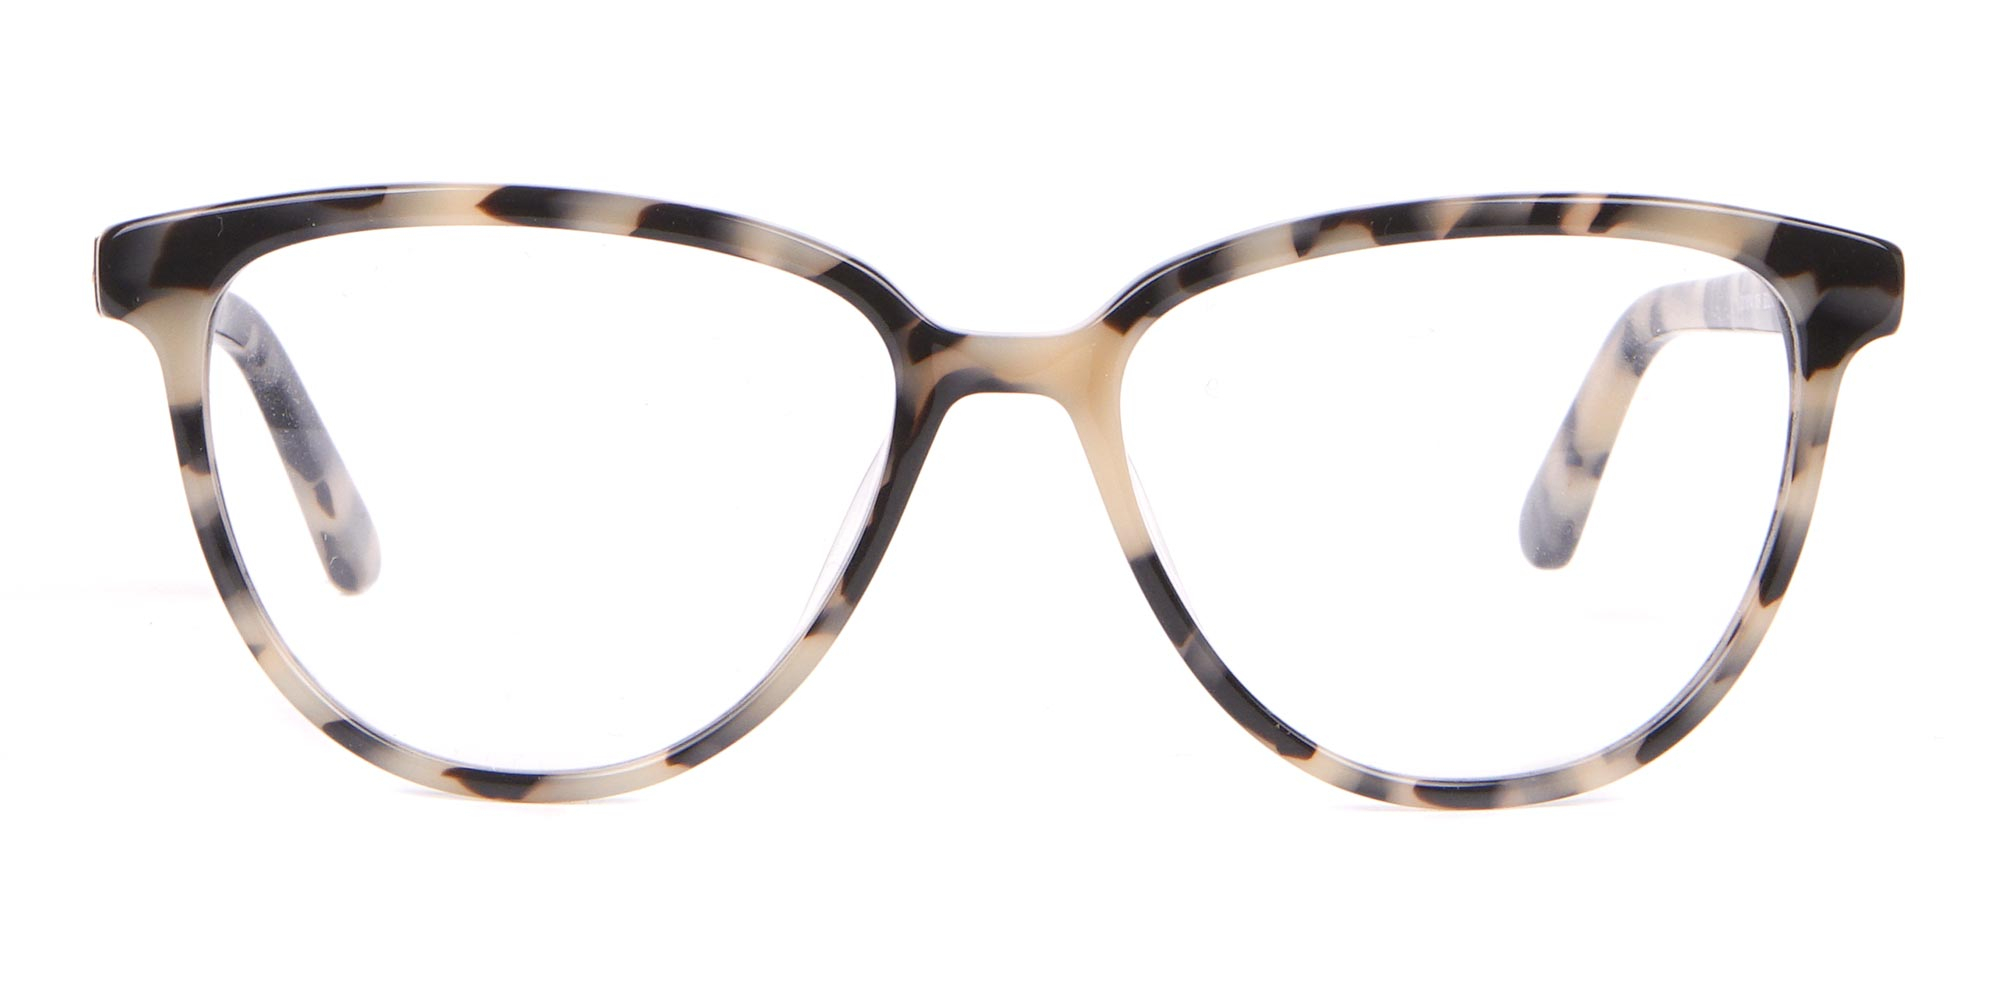 Tortoiseshell Glasses in Cat-Eye